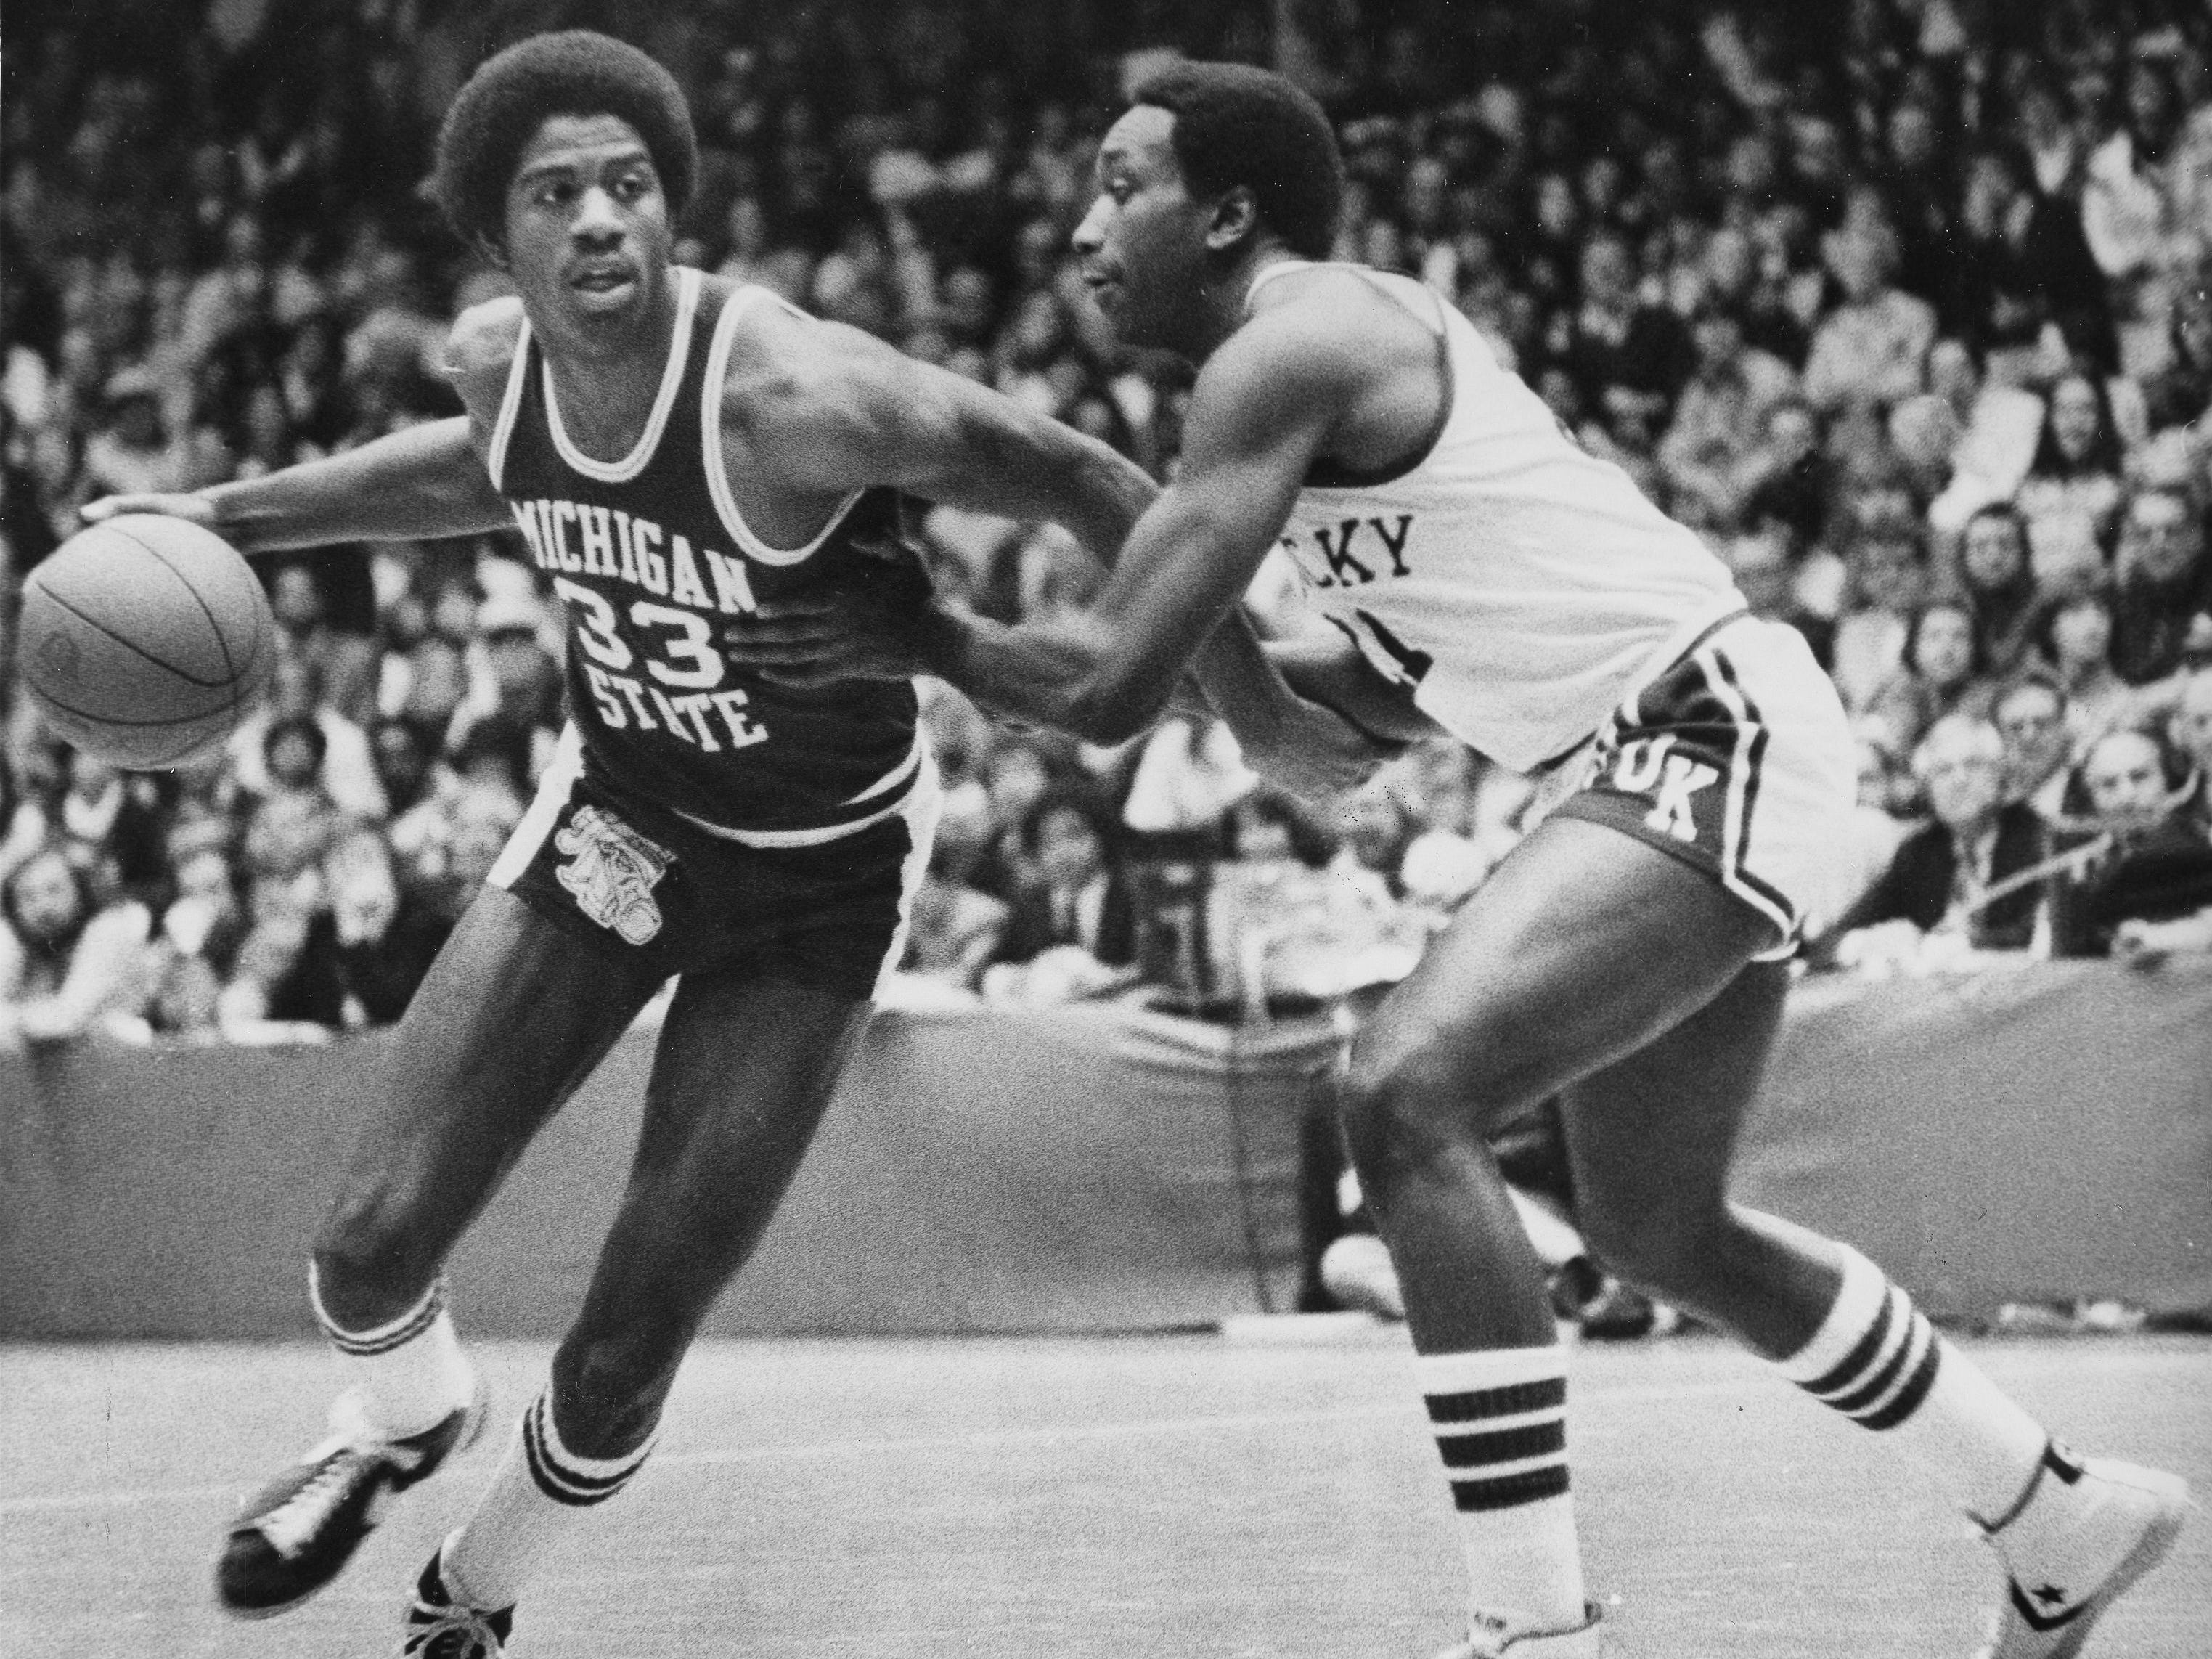 Michigan State forward Earvin Johnson (33) pushes off Kentucky forward Jack Givens as he drives for the basket in the first half of the NCAA Mideast Regional final in Dayton, Ohio, March 18, 1978.